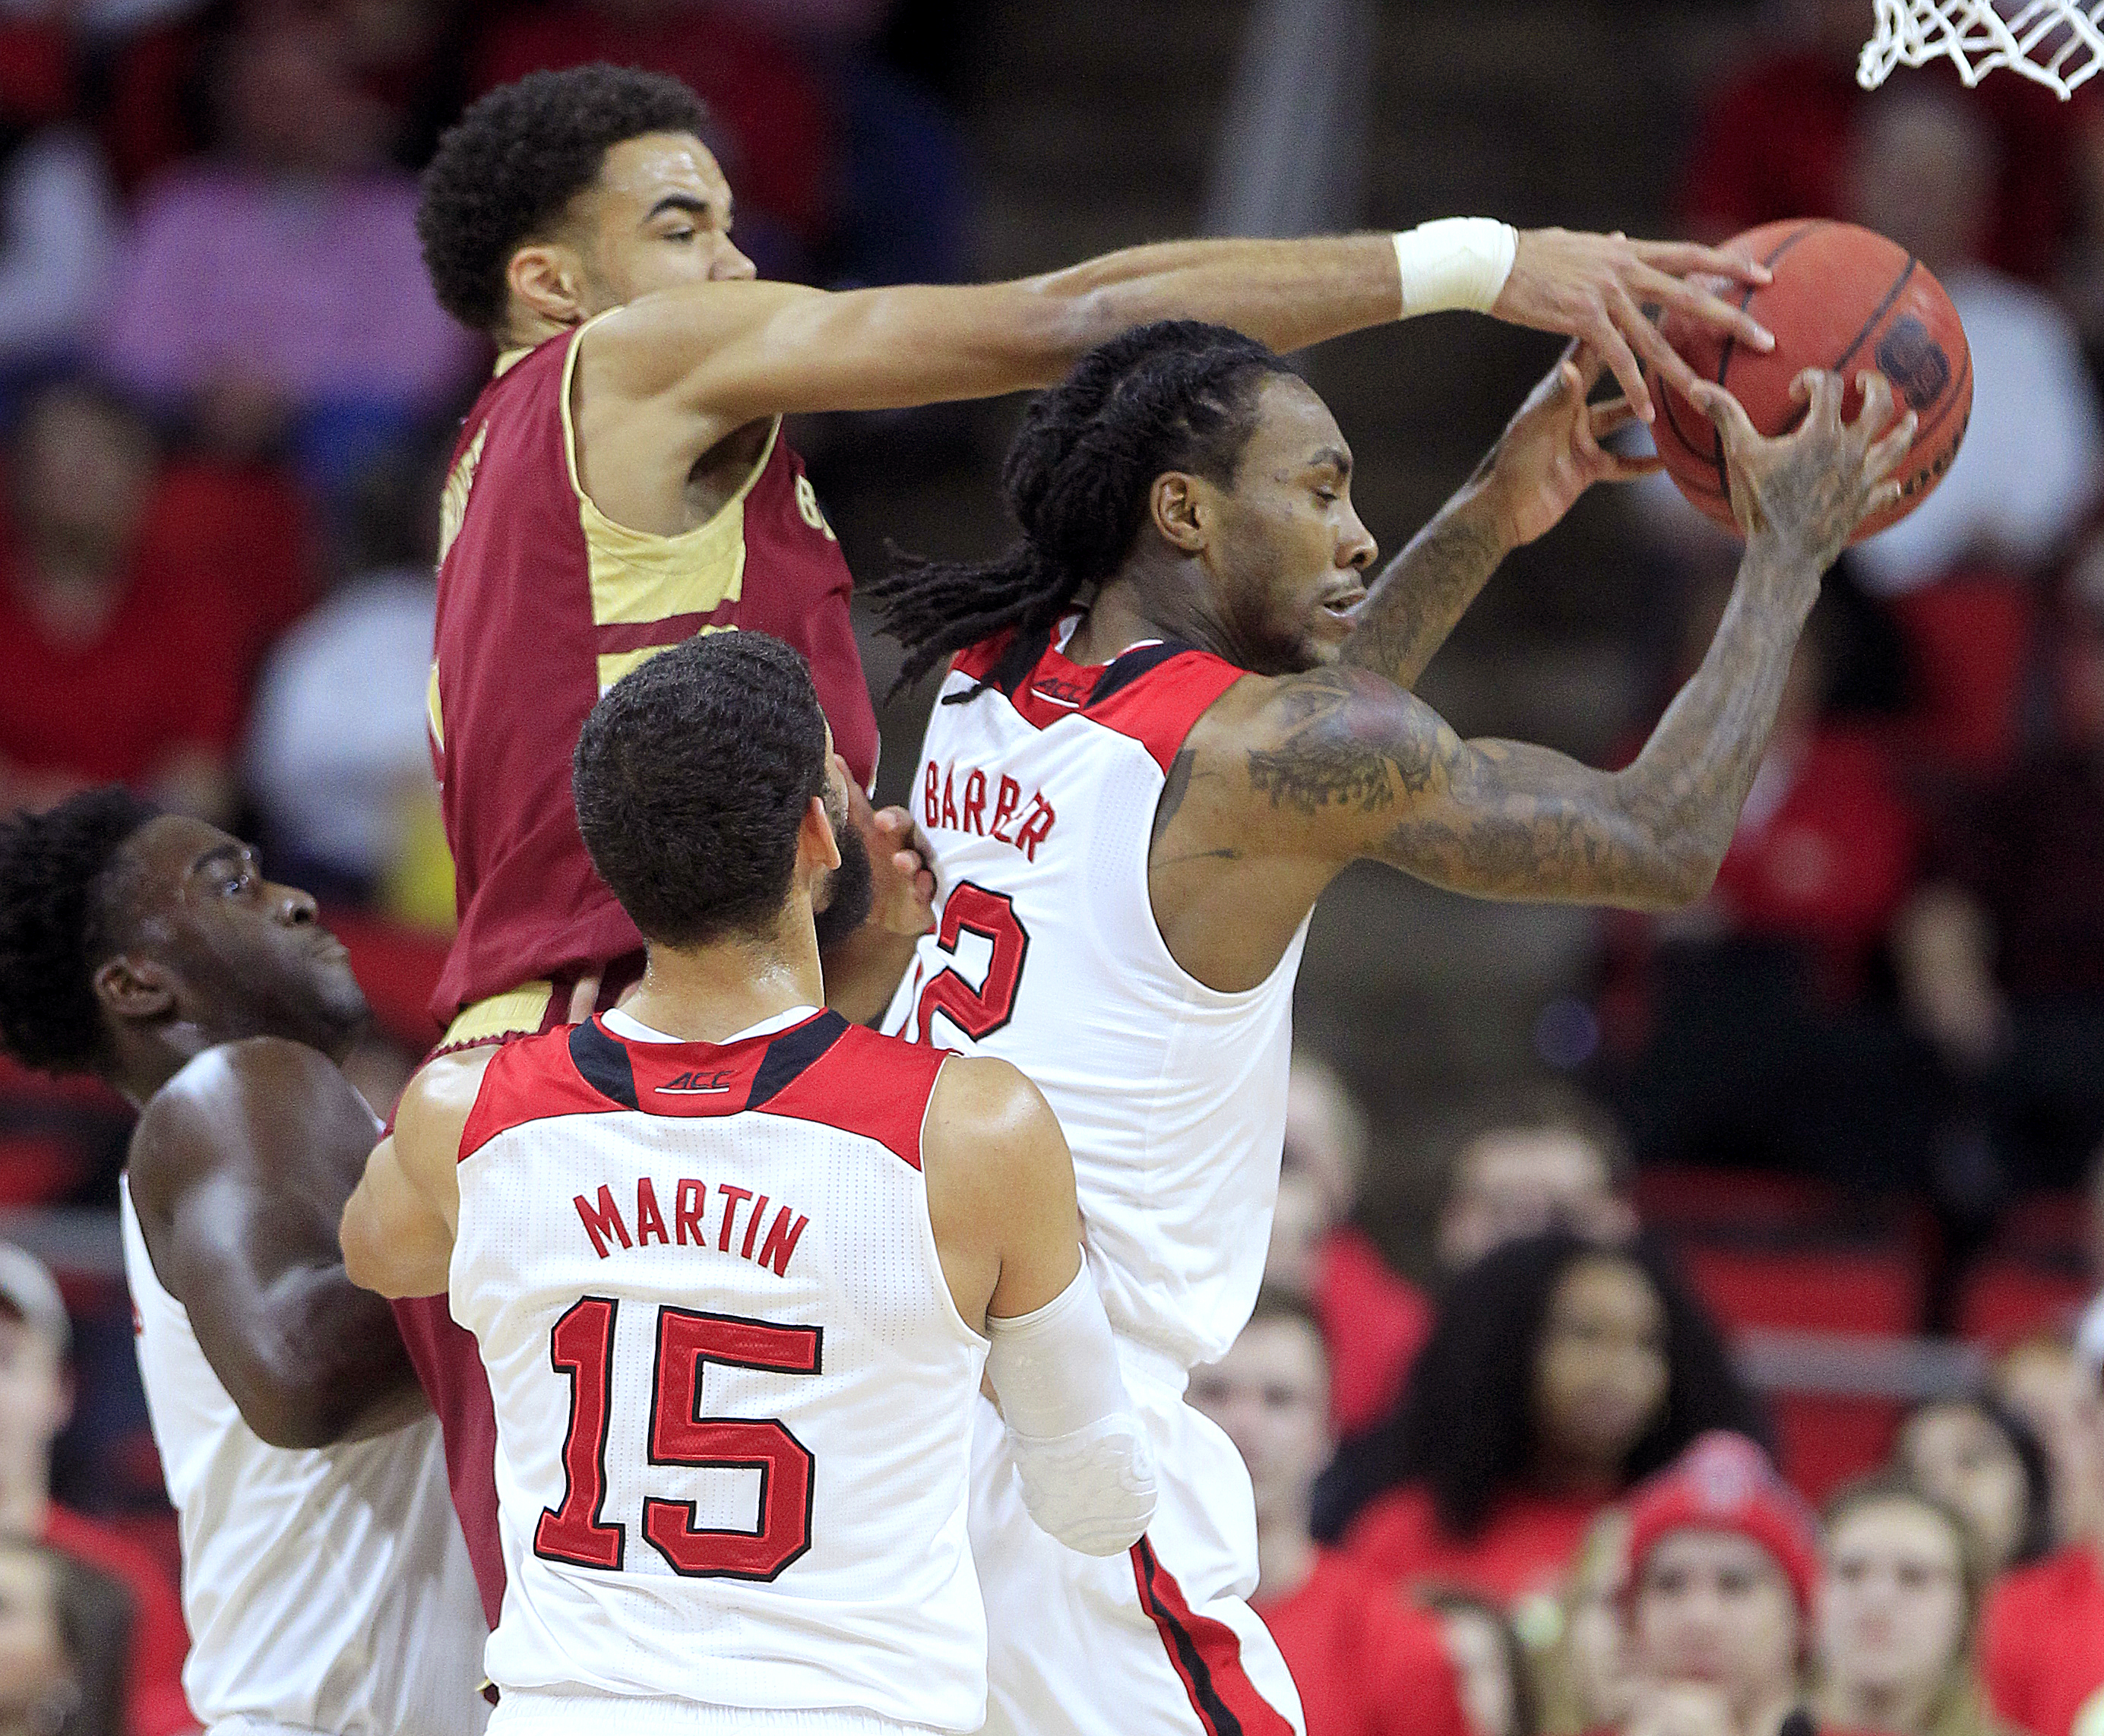 North Carolina State's Cat Barber (12) pulls in a rebound from Boston College's Jerome Robinson (1) during the first half of an NCAA basketball game, Wednesday, March 2, 2016 in Raleigh, N.C. (Ethan Hyman/The News & Observer via AP) MANDATORY CREDIT